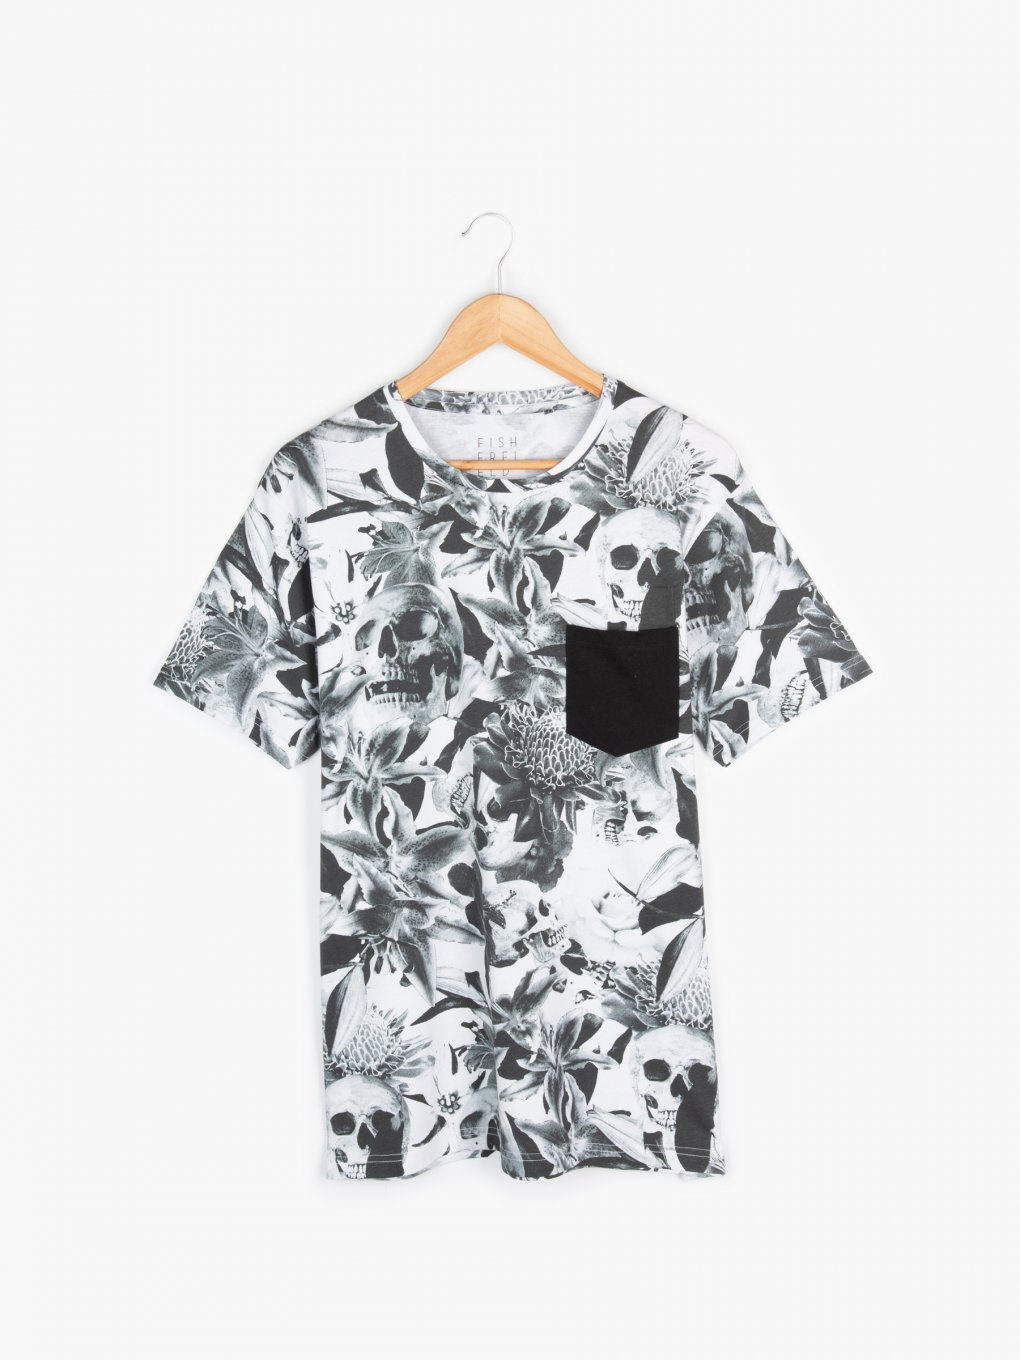 Printed t-shirt with chest pocket